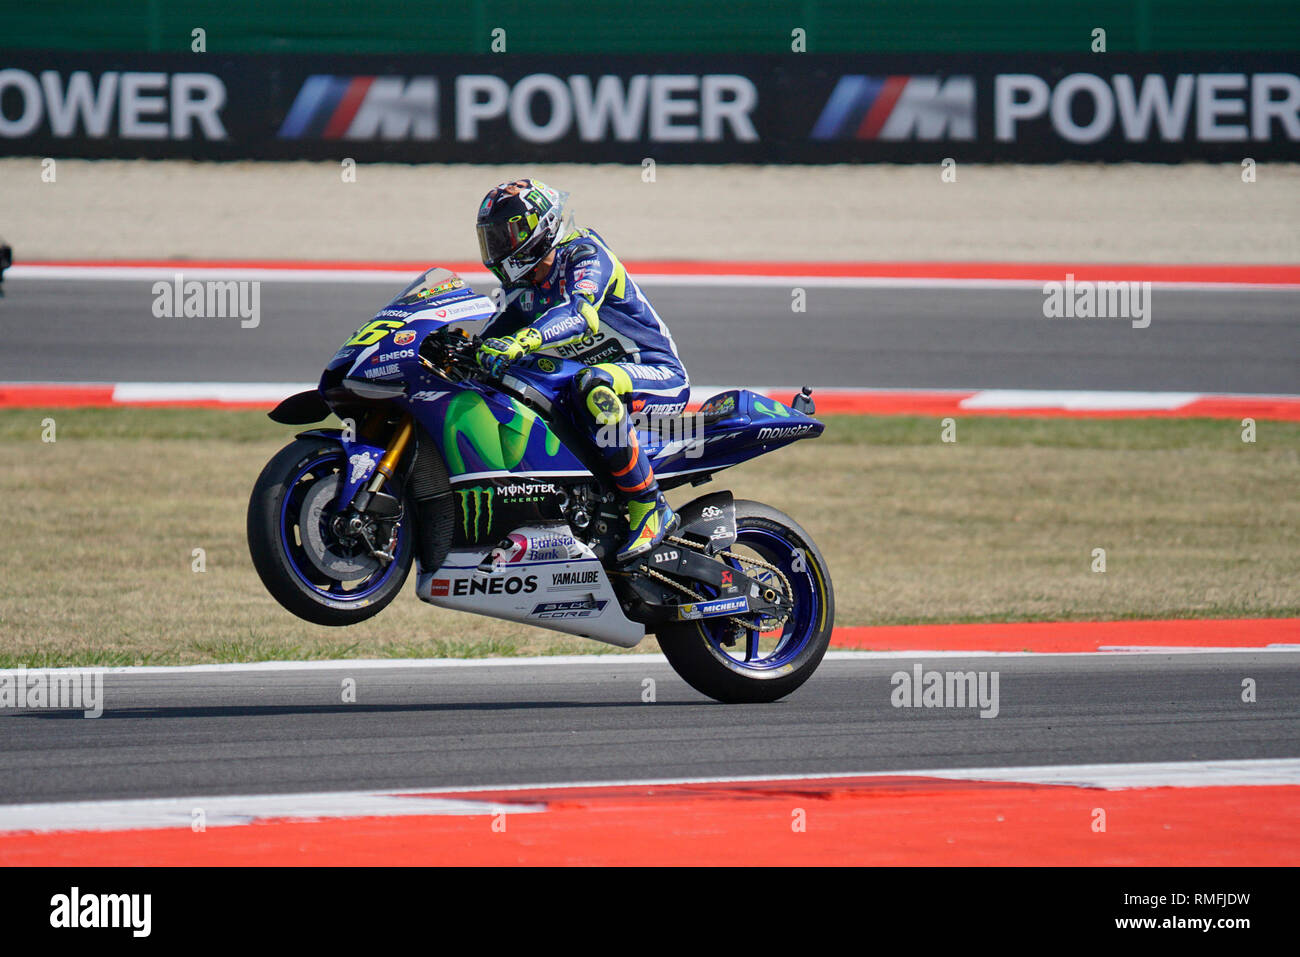 Foto Costanza Benvenuti/LaPresse 10.09.2016 Sport Motociclismo- MotoGP GRAN PREMIO TIM DI SAN MARINO E DELLA RIVIERA DI RIMINI- Misano World Circuit Marco Simoncelli - 2016 nella foto: Valentino Rossi-Yamaha  Photo Costanza Benvenuti/LaPresse 2016 10 September Sport - Motociclismo - MotoGP GRAN PREMIO TIM DI SAN MARINO E DELLA RIVIERA DI RIMINI- Misano World Circuit Marco Simoncelli - 2016 in the Photo: Valentino Rossi-Yamaha Stock Photo